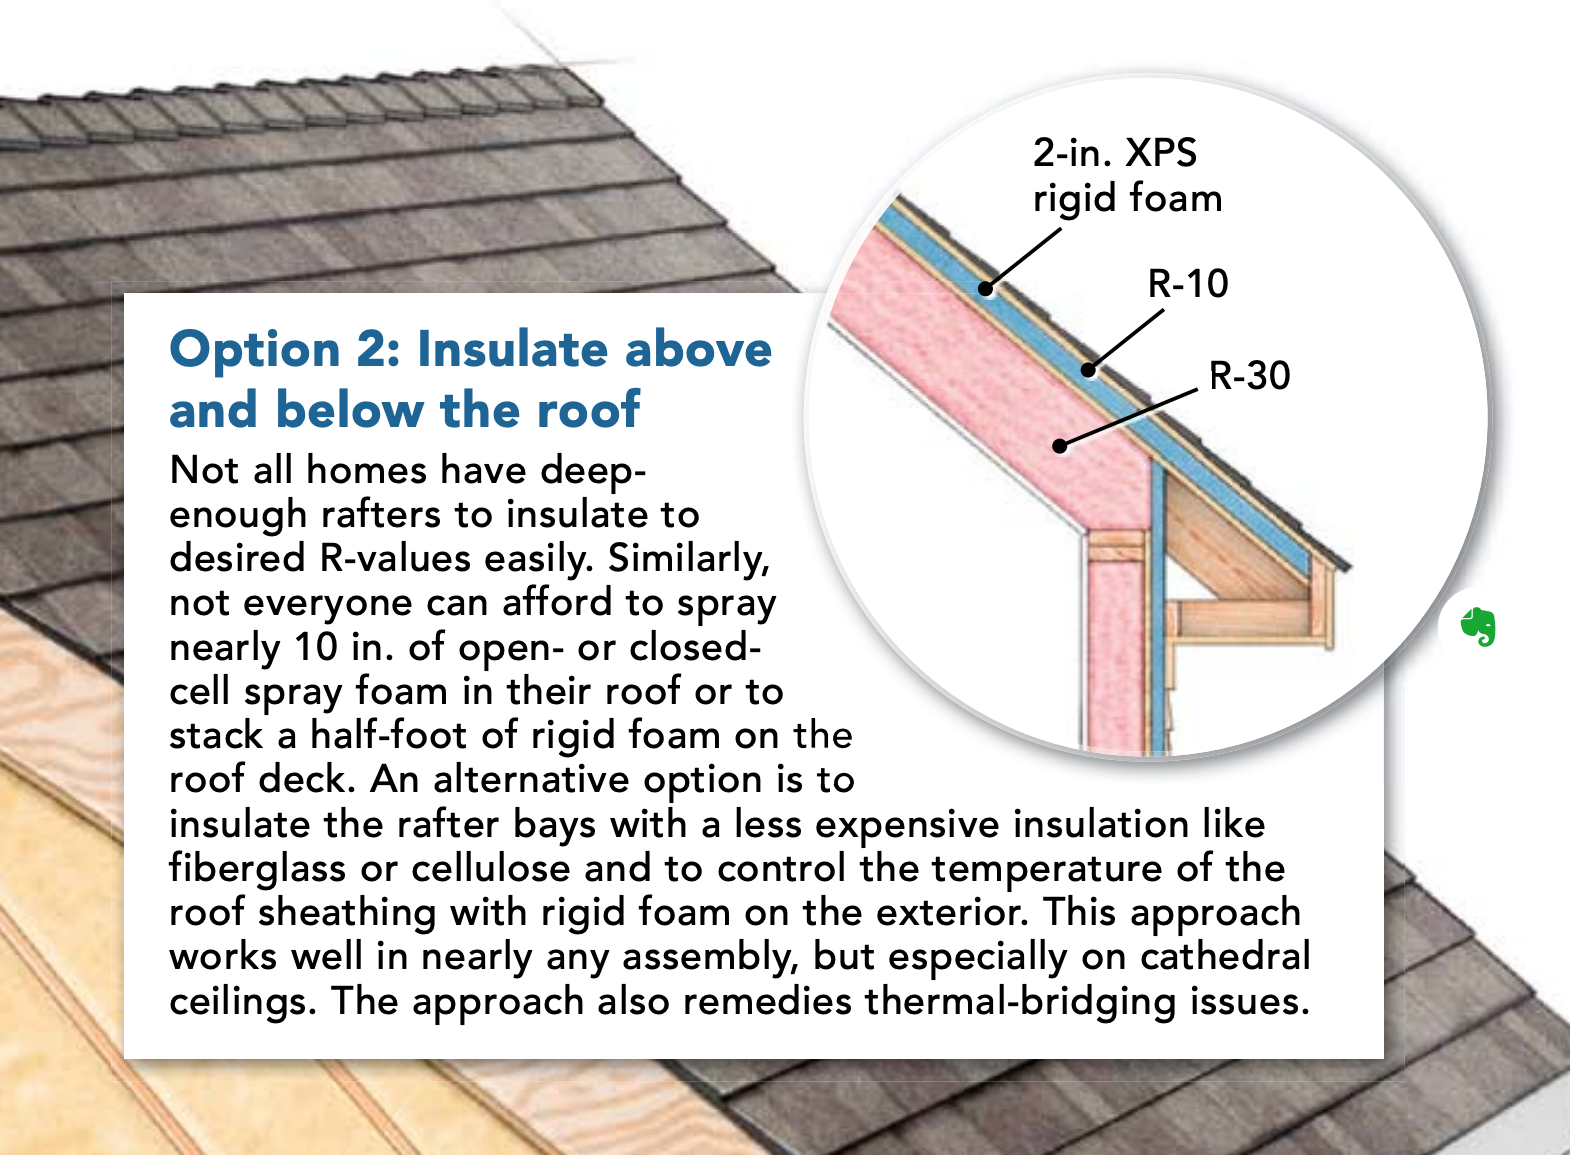 Pin By Matt Smaus On Attic Room Roof Vents Roof Cladding Roof Sheathing